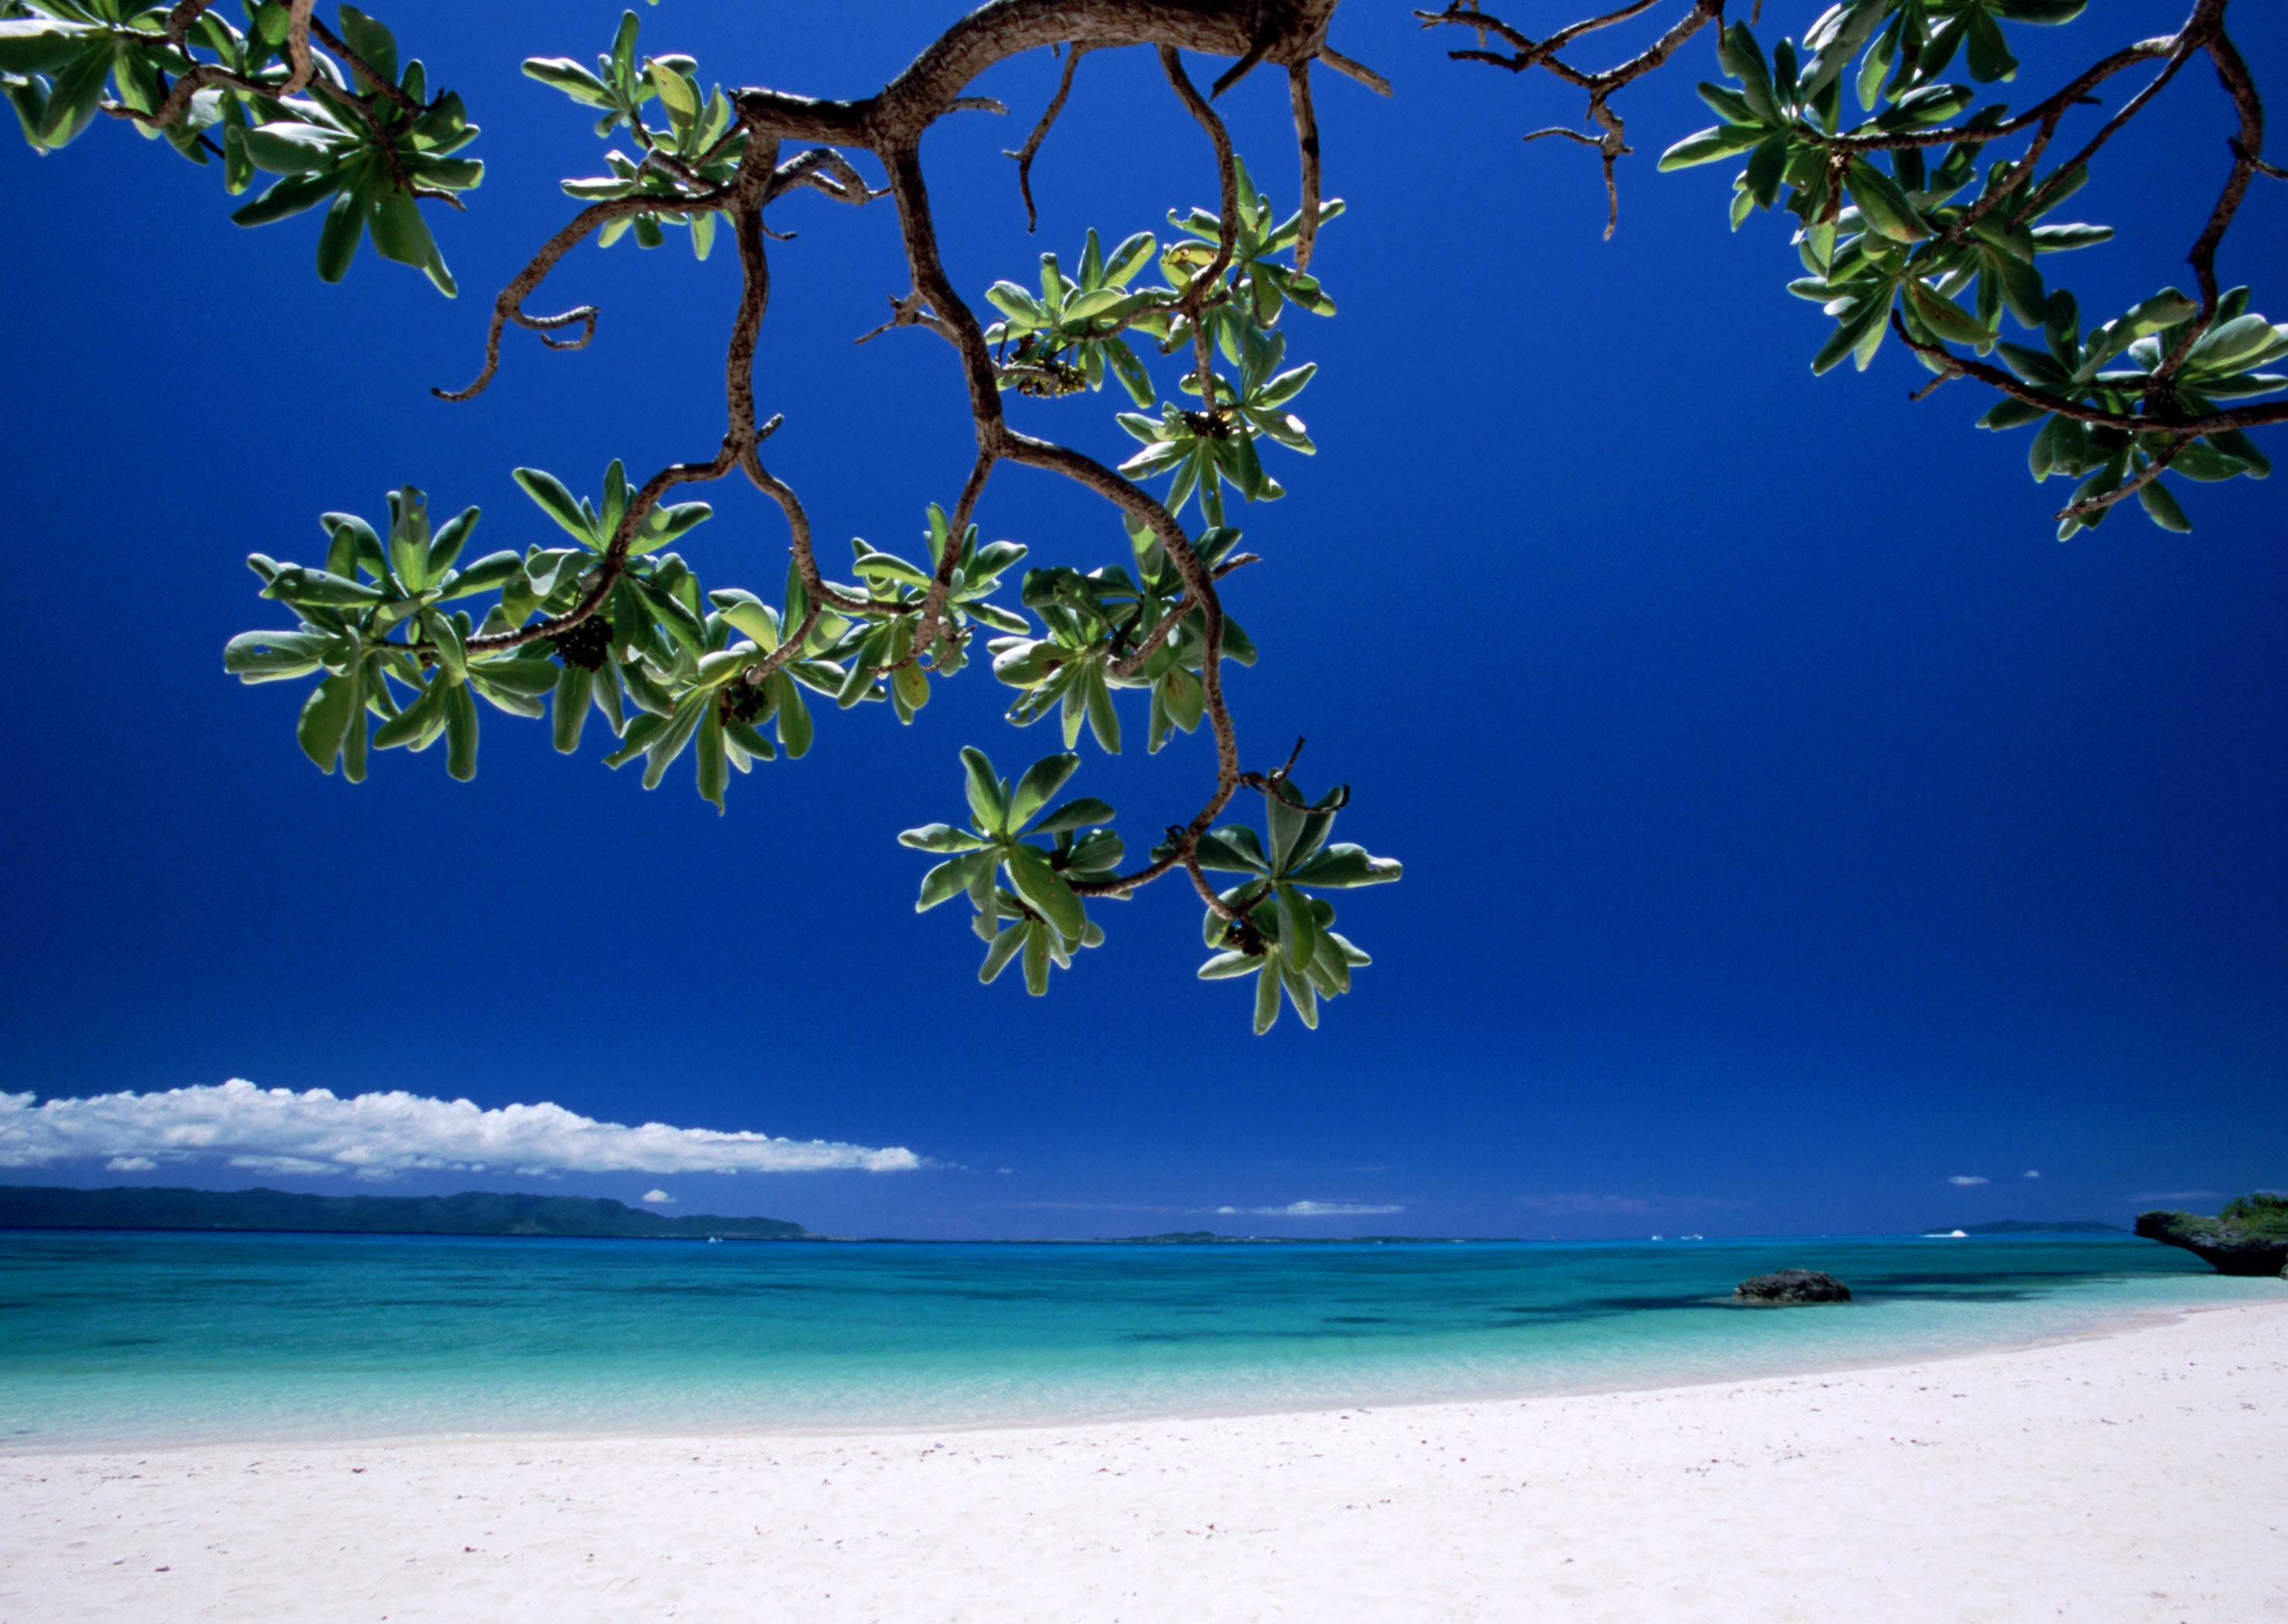 Caribbean Beach Scenes: Beach Scenes For Desktop Wallpaper